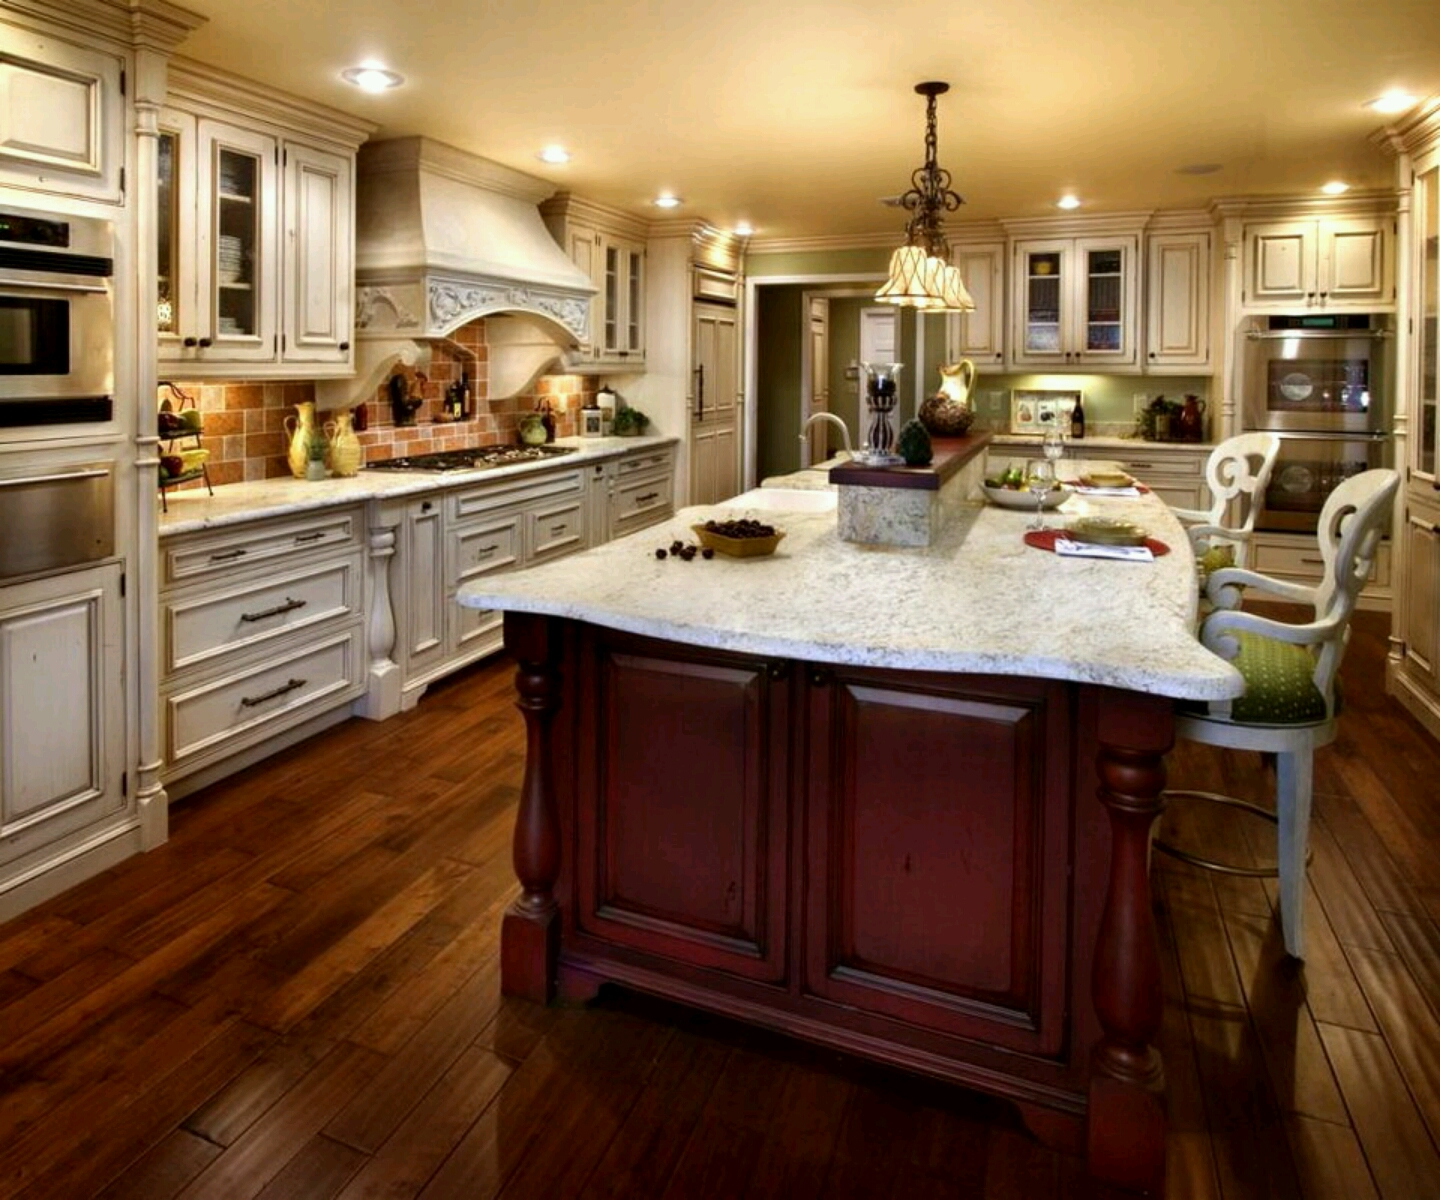 Luxury kitchen modern kitchen cabinets designs furniture gallery - Luxury kitchen cabinets ...